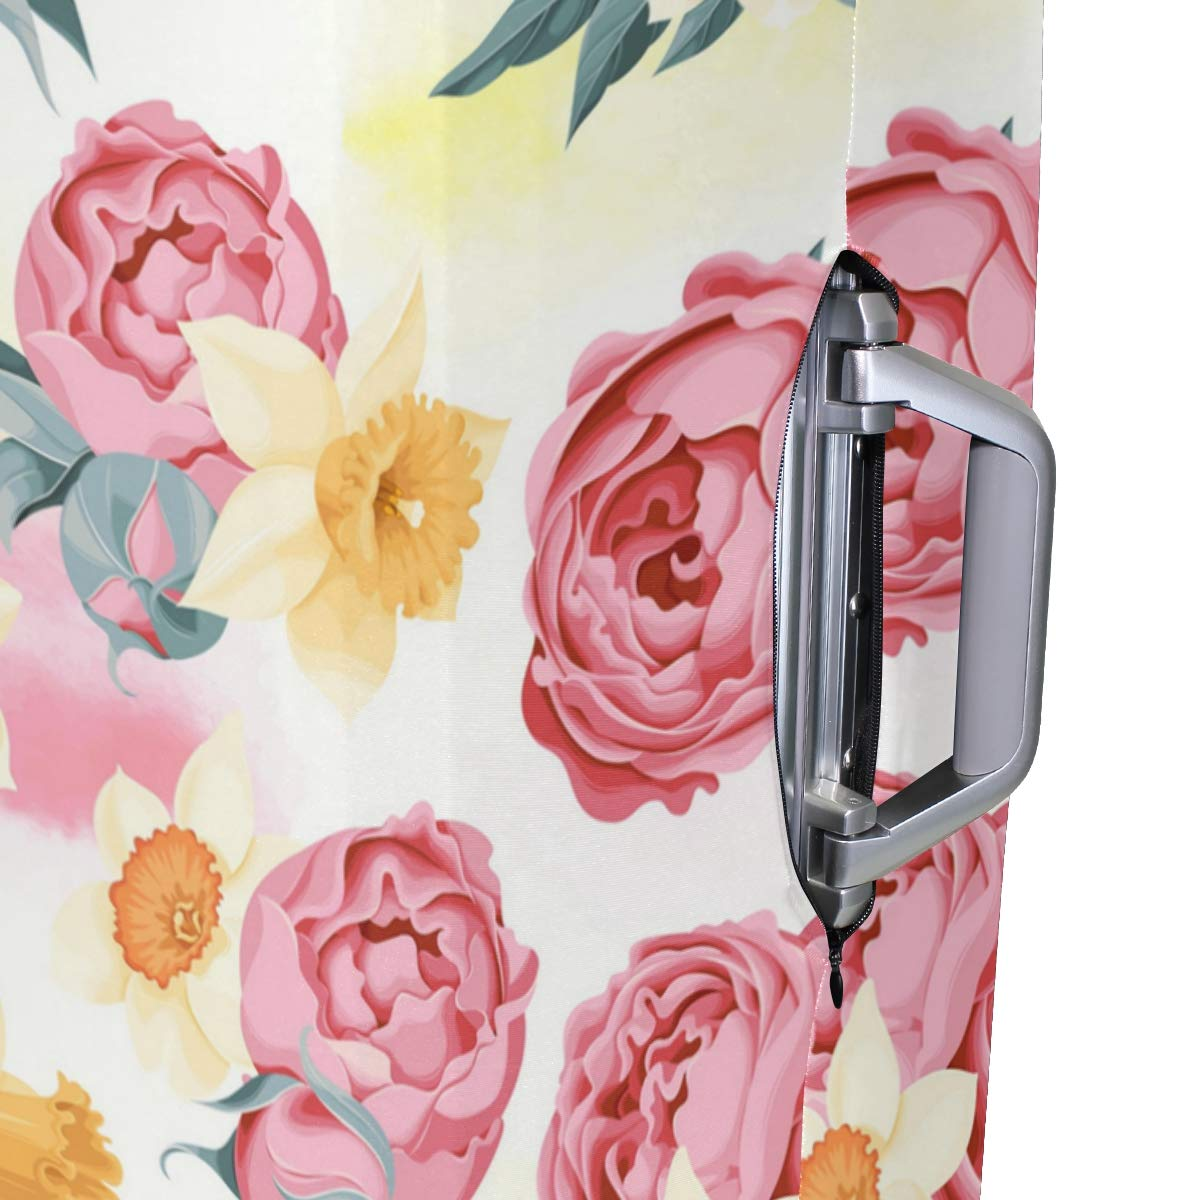 Yellow Flower And Rose Traveler Lightweight Rotating Luggage Protector Case Can Carry With You Can Expand Travel Bag Trolley Rolling Luggage Protector Case